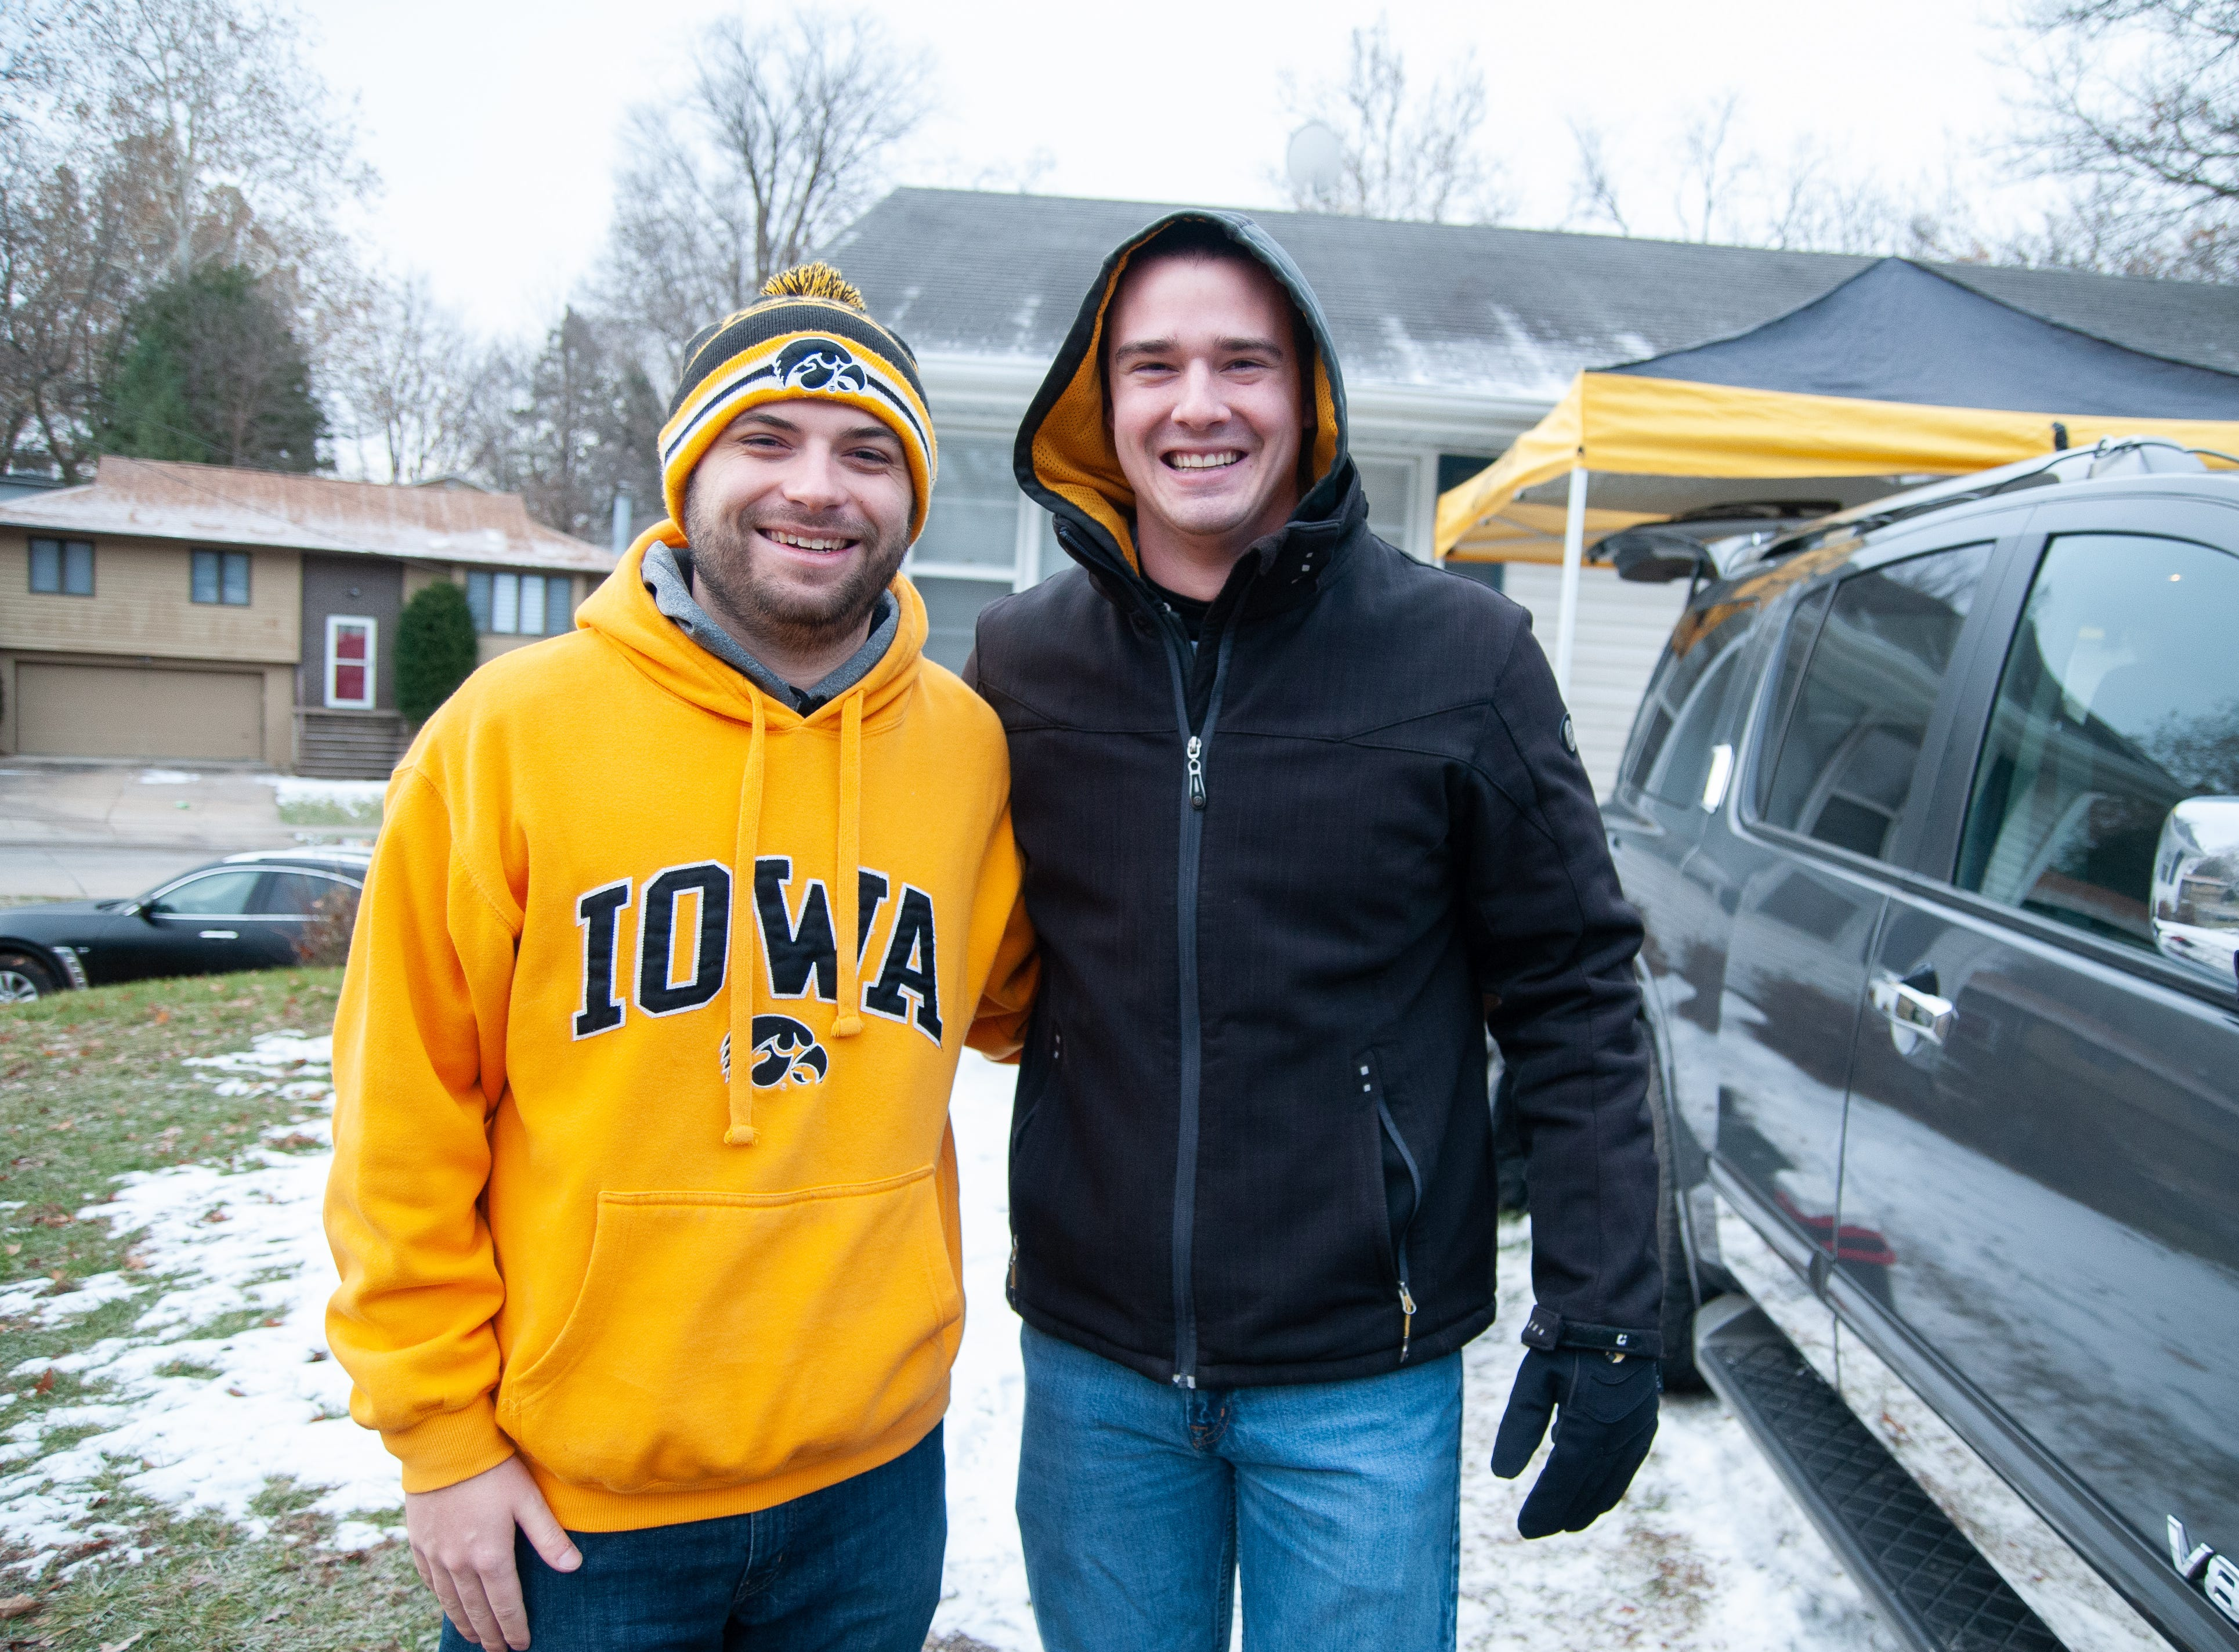 Zach Henningsen, left, and Evan Walsh, of Iowa City and eastern Iowa, Friday, Nov. 23, 2018, while tailgating before the Iowa game against Nebraska in Iowa City.